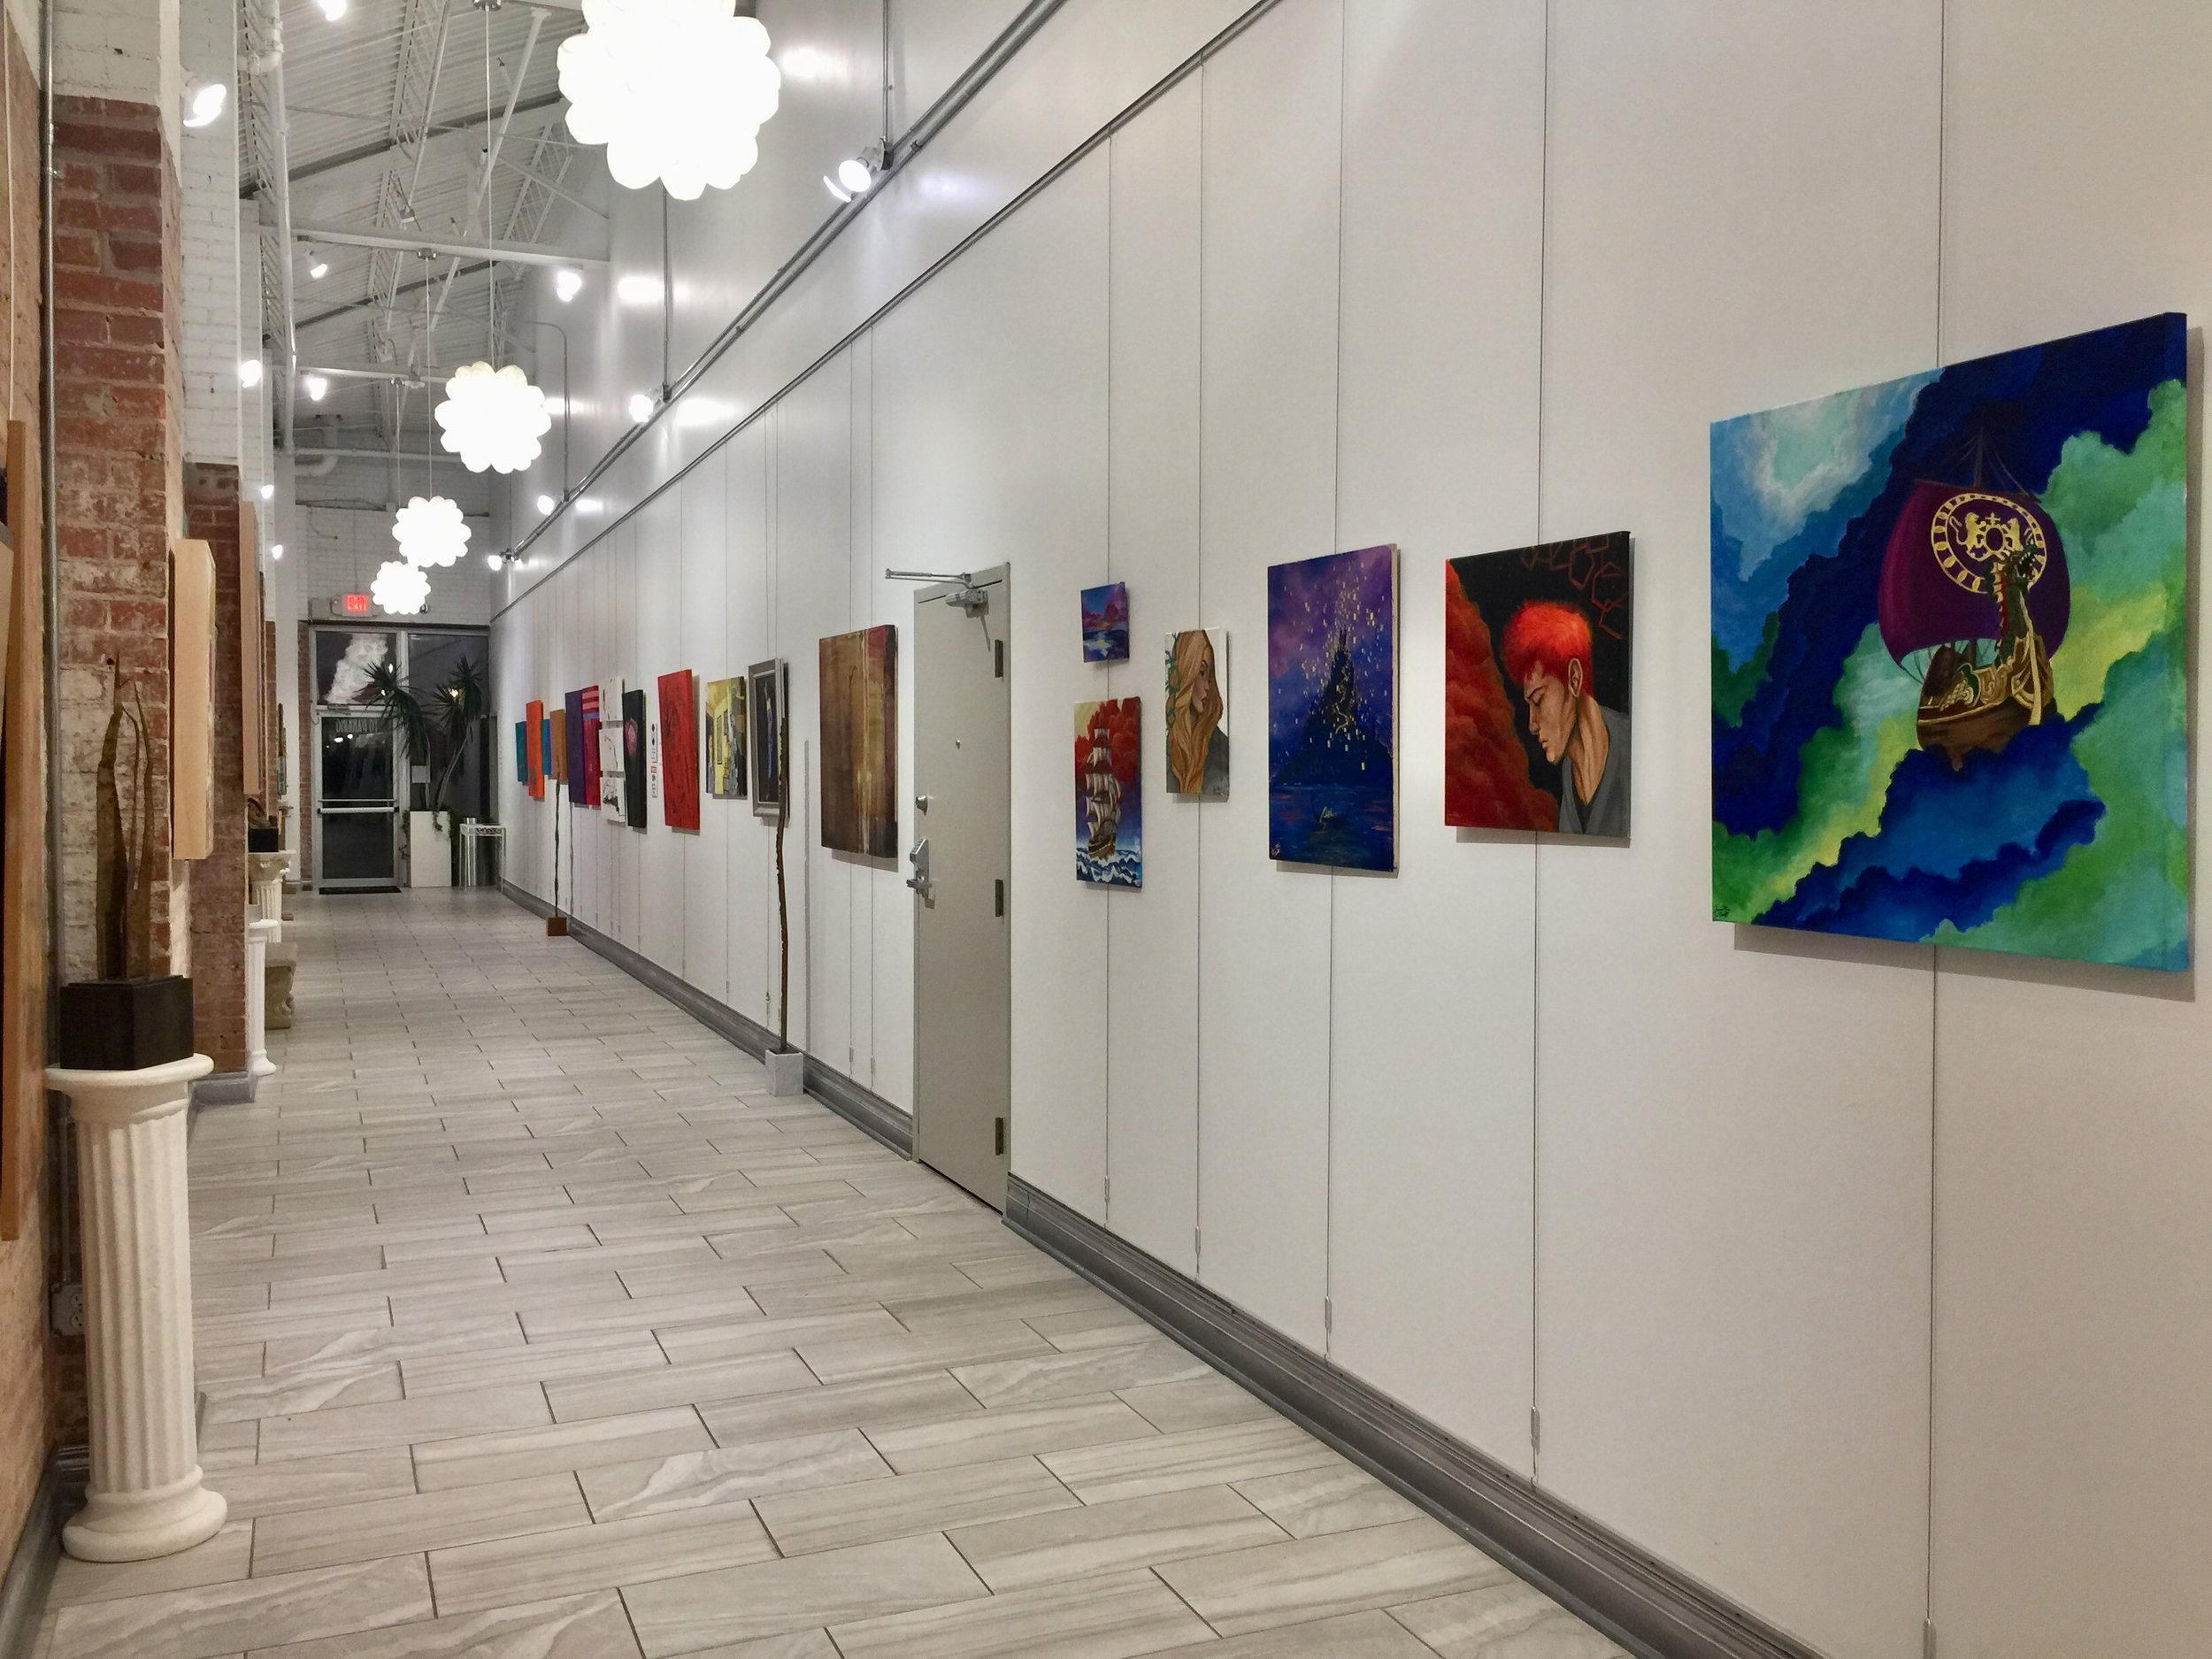 Painting by Samantha Hurst in the right foreground